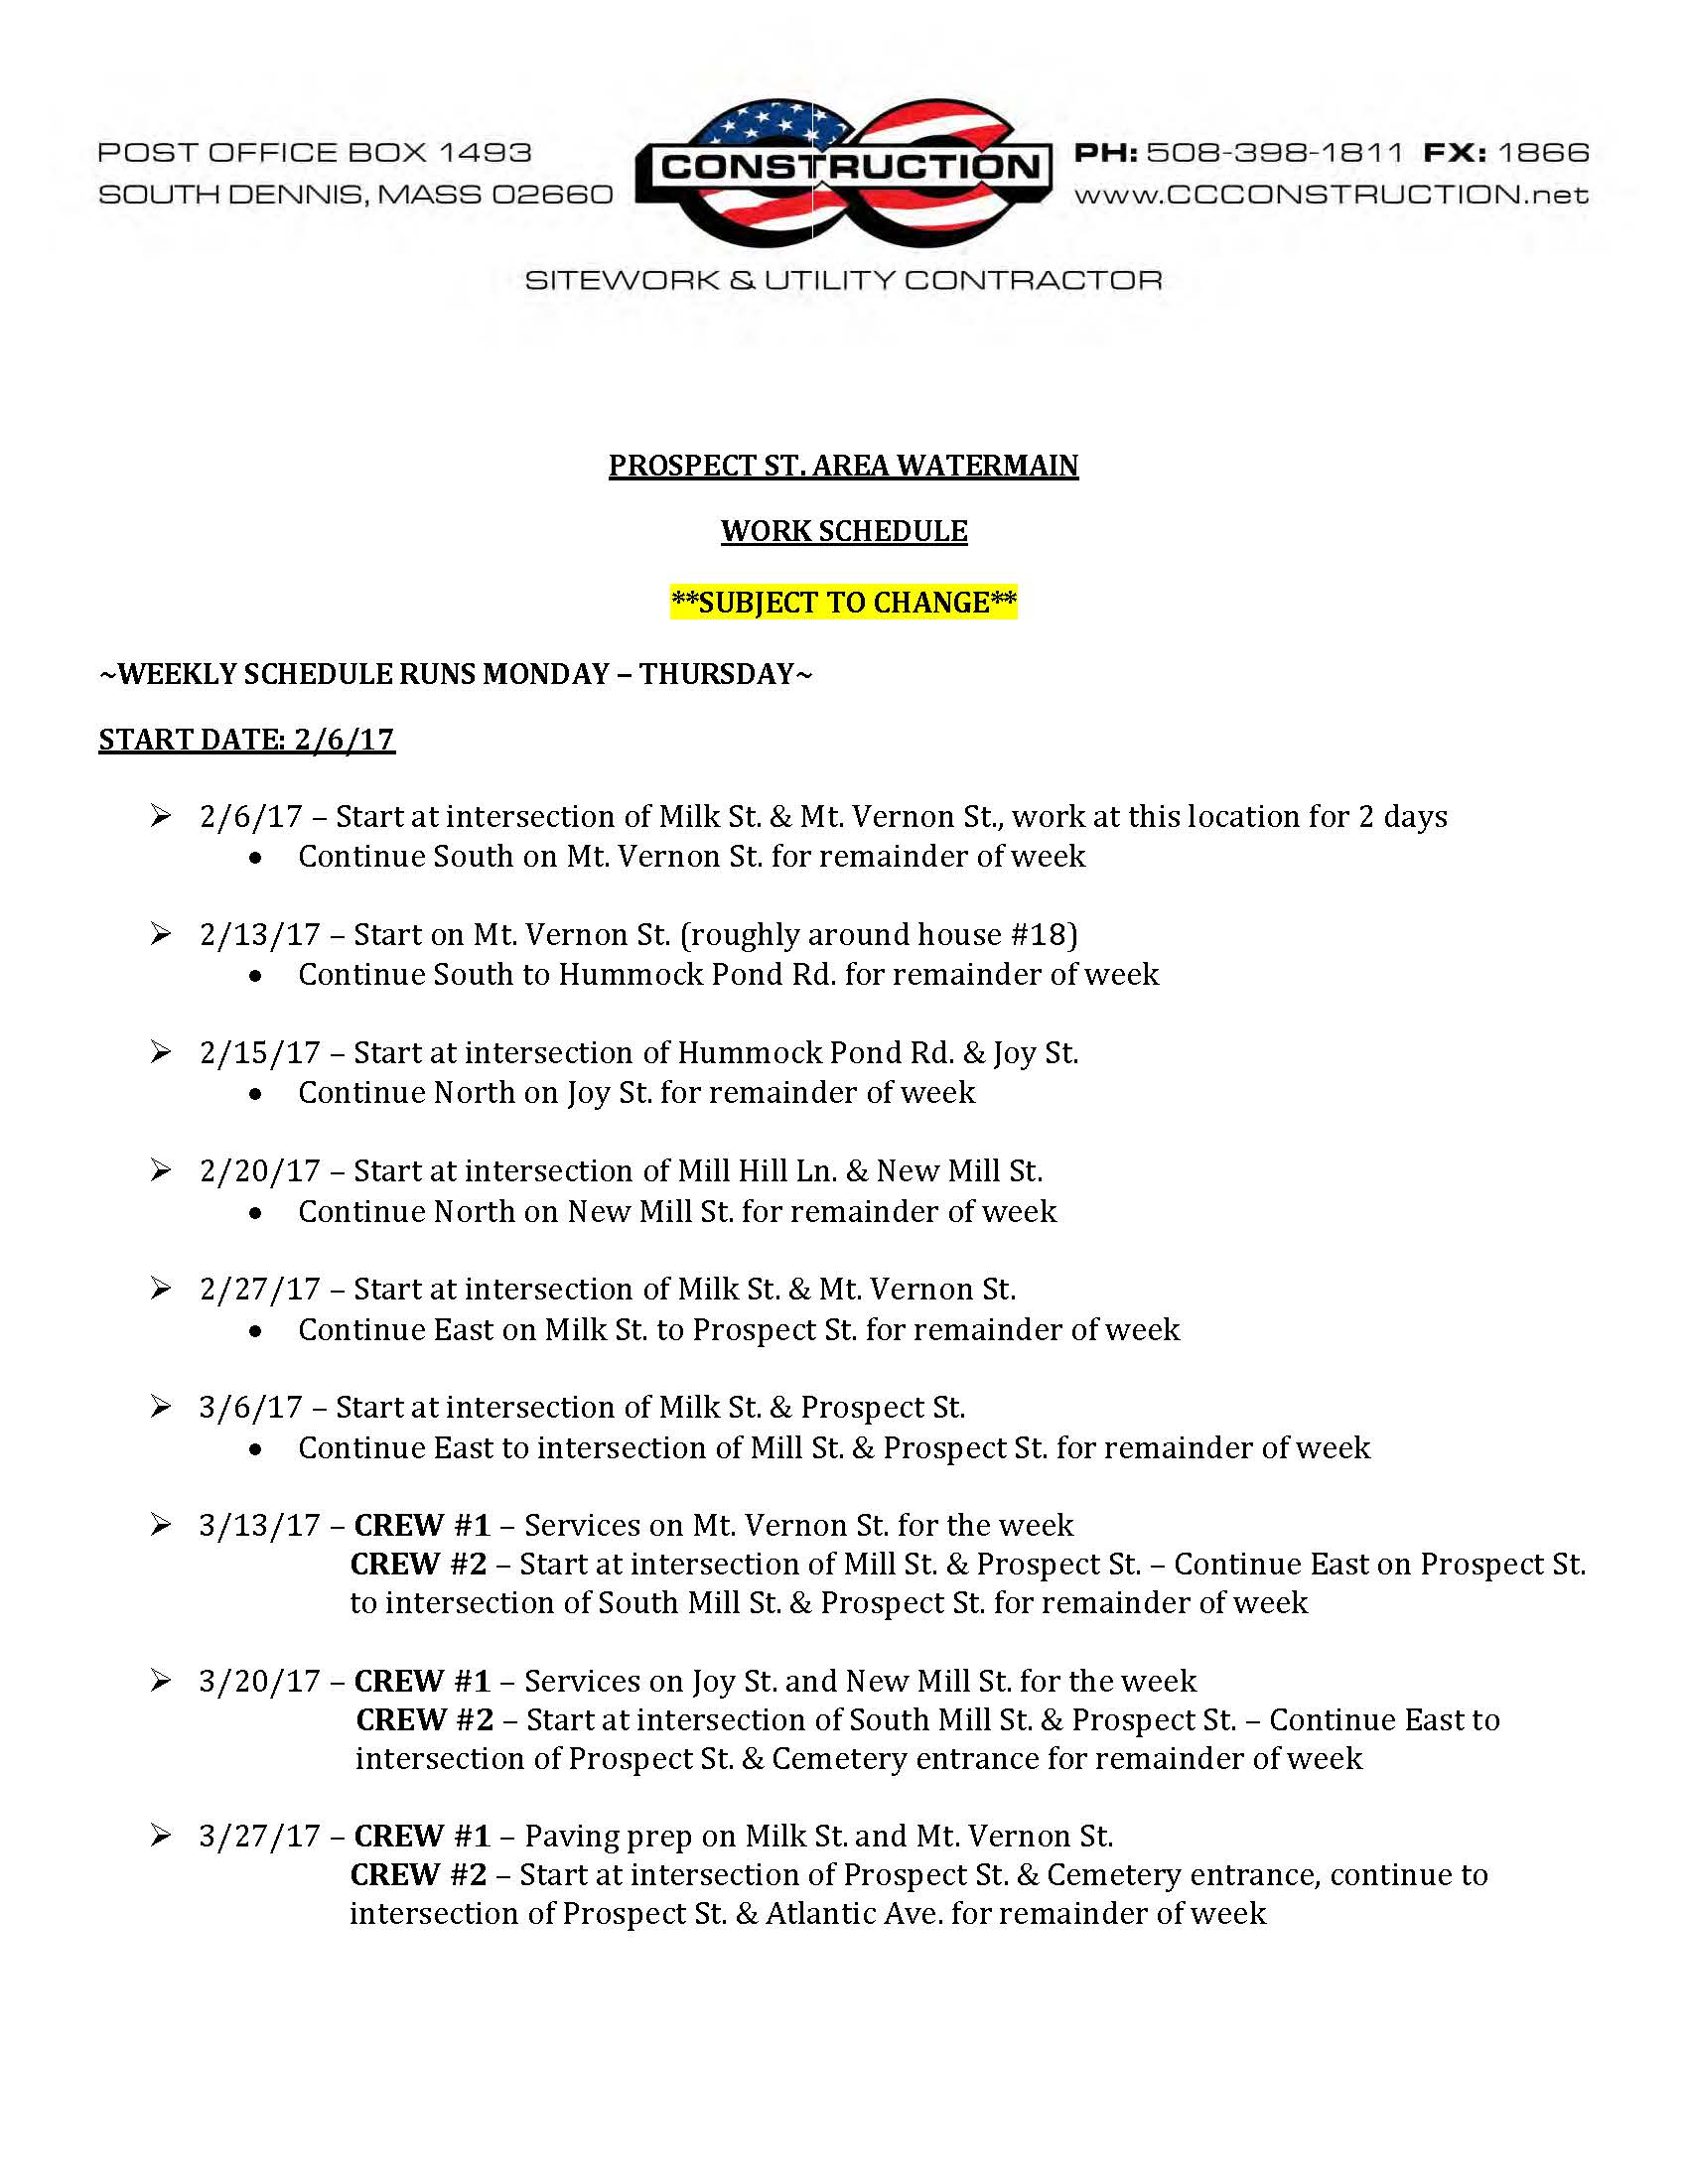 Prospect St Water Main Project Weekly Schedule_Page_1